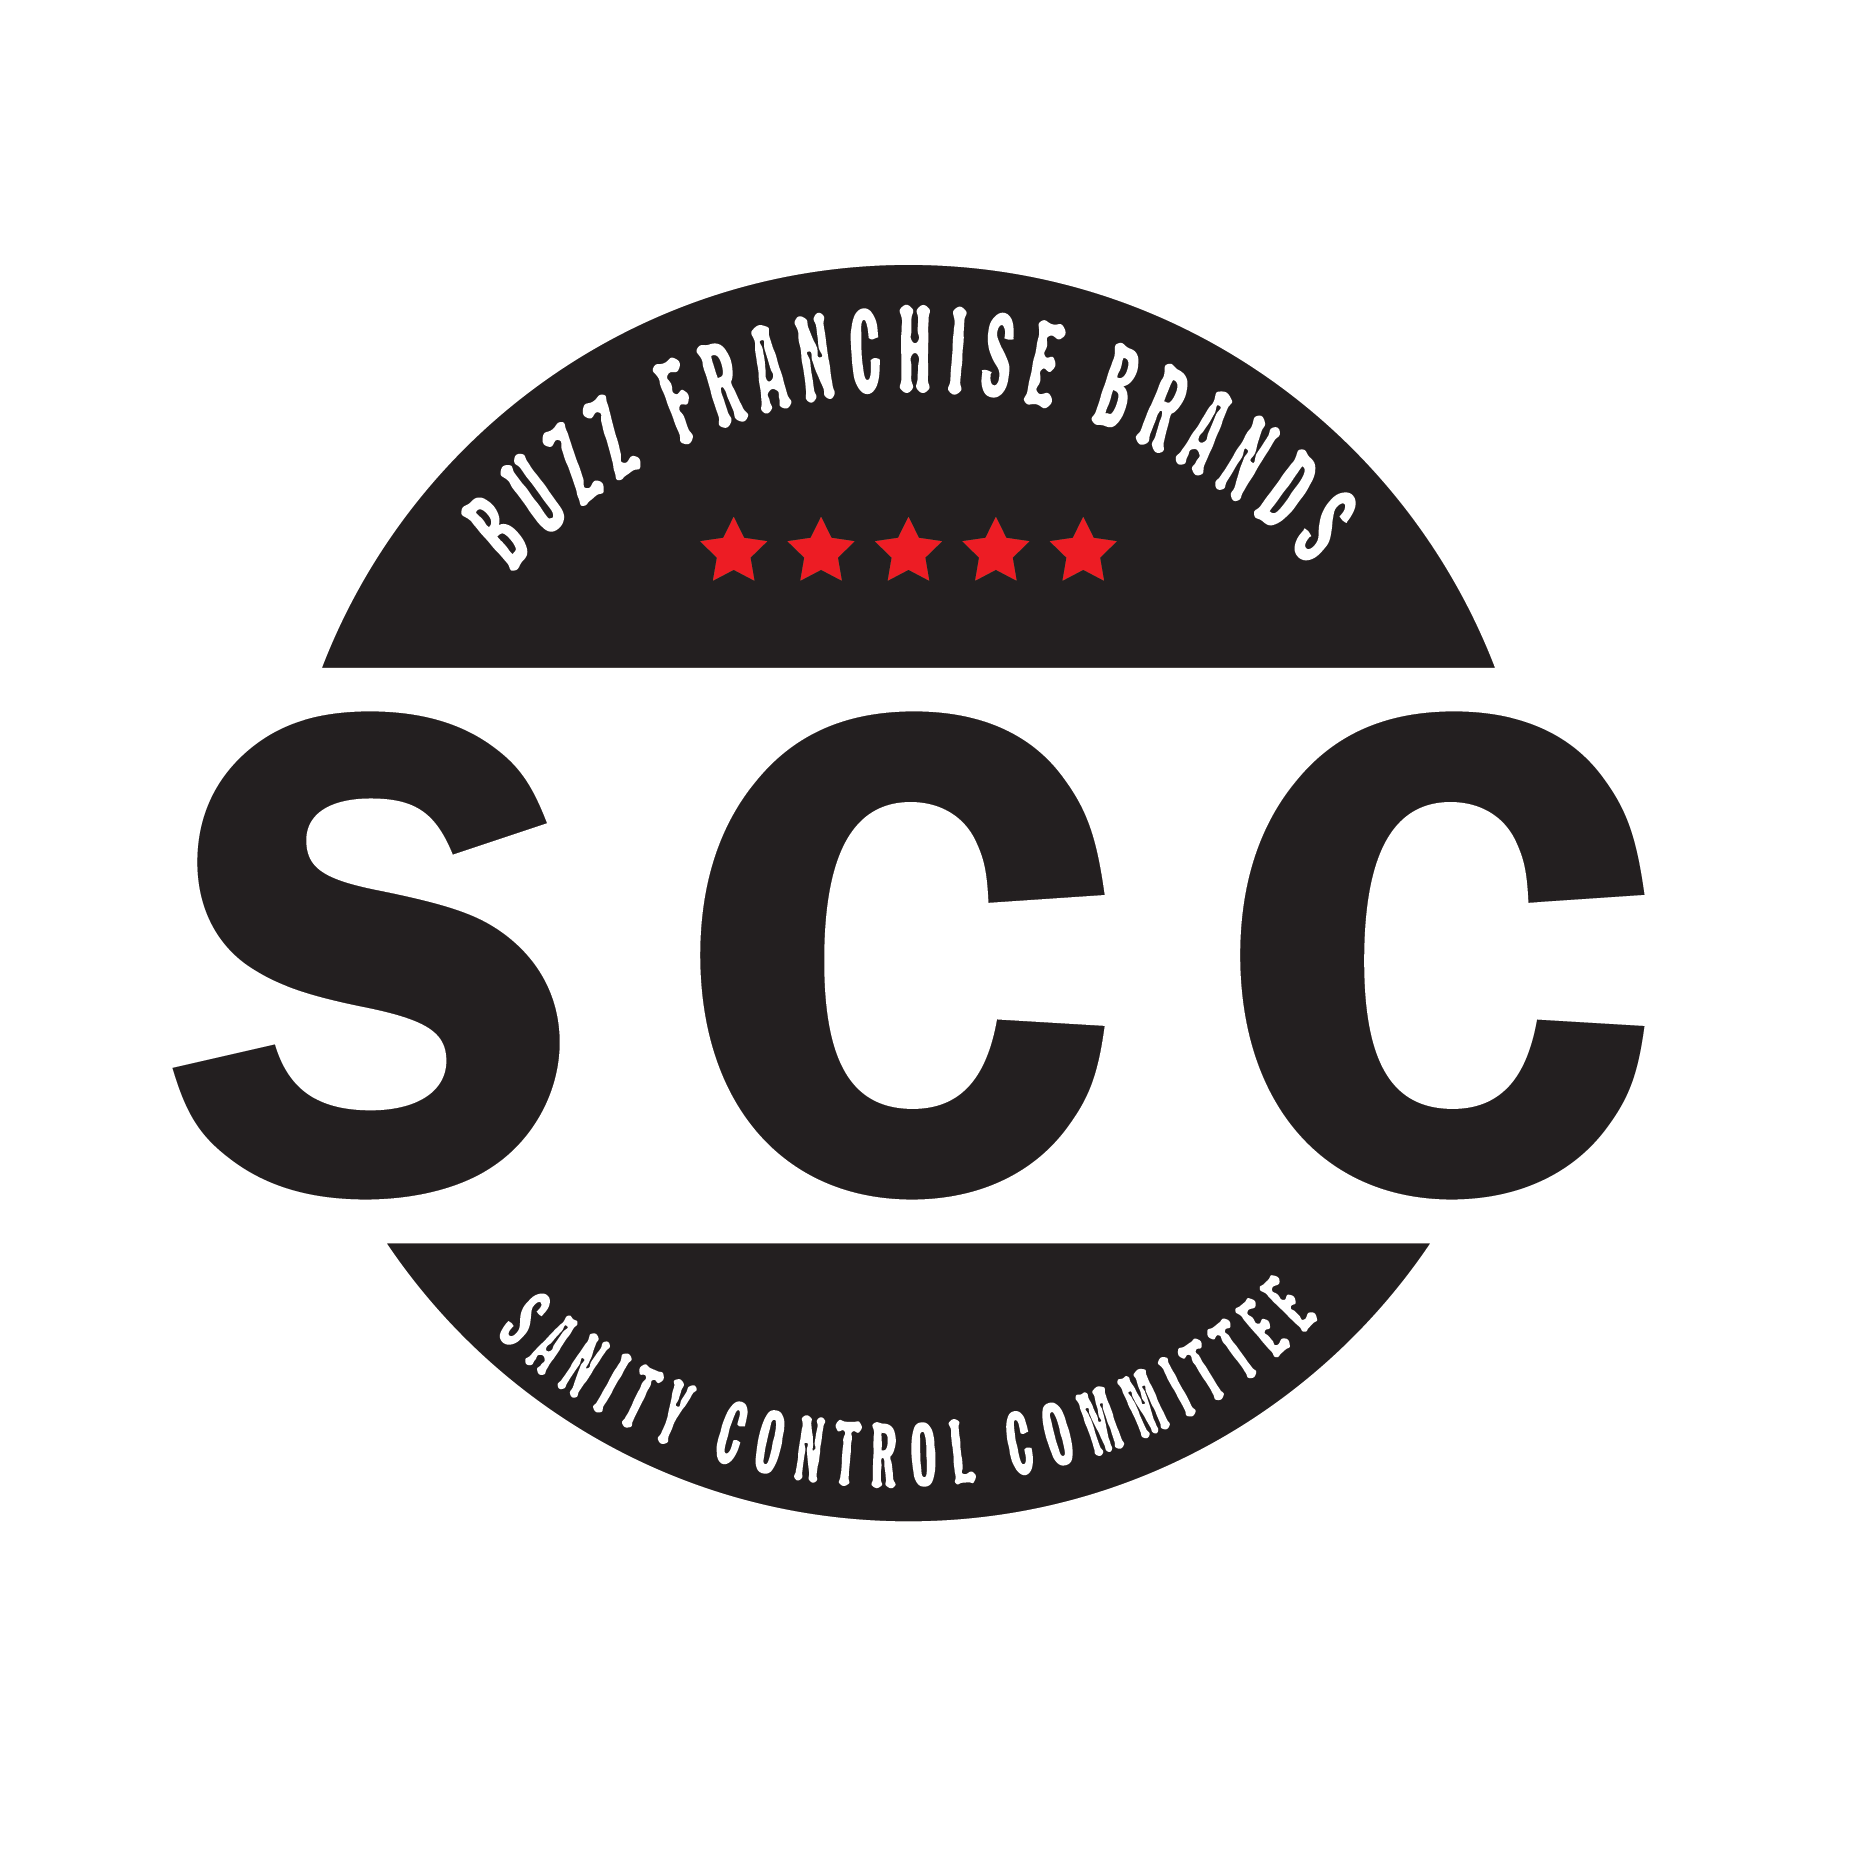 Sanity Control Committee Black and White logo with Red Stars